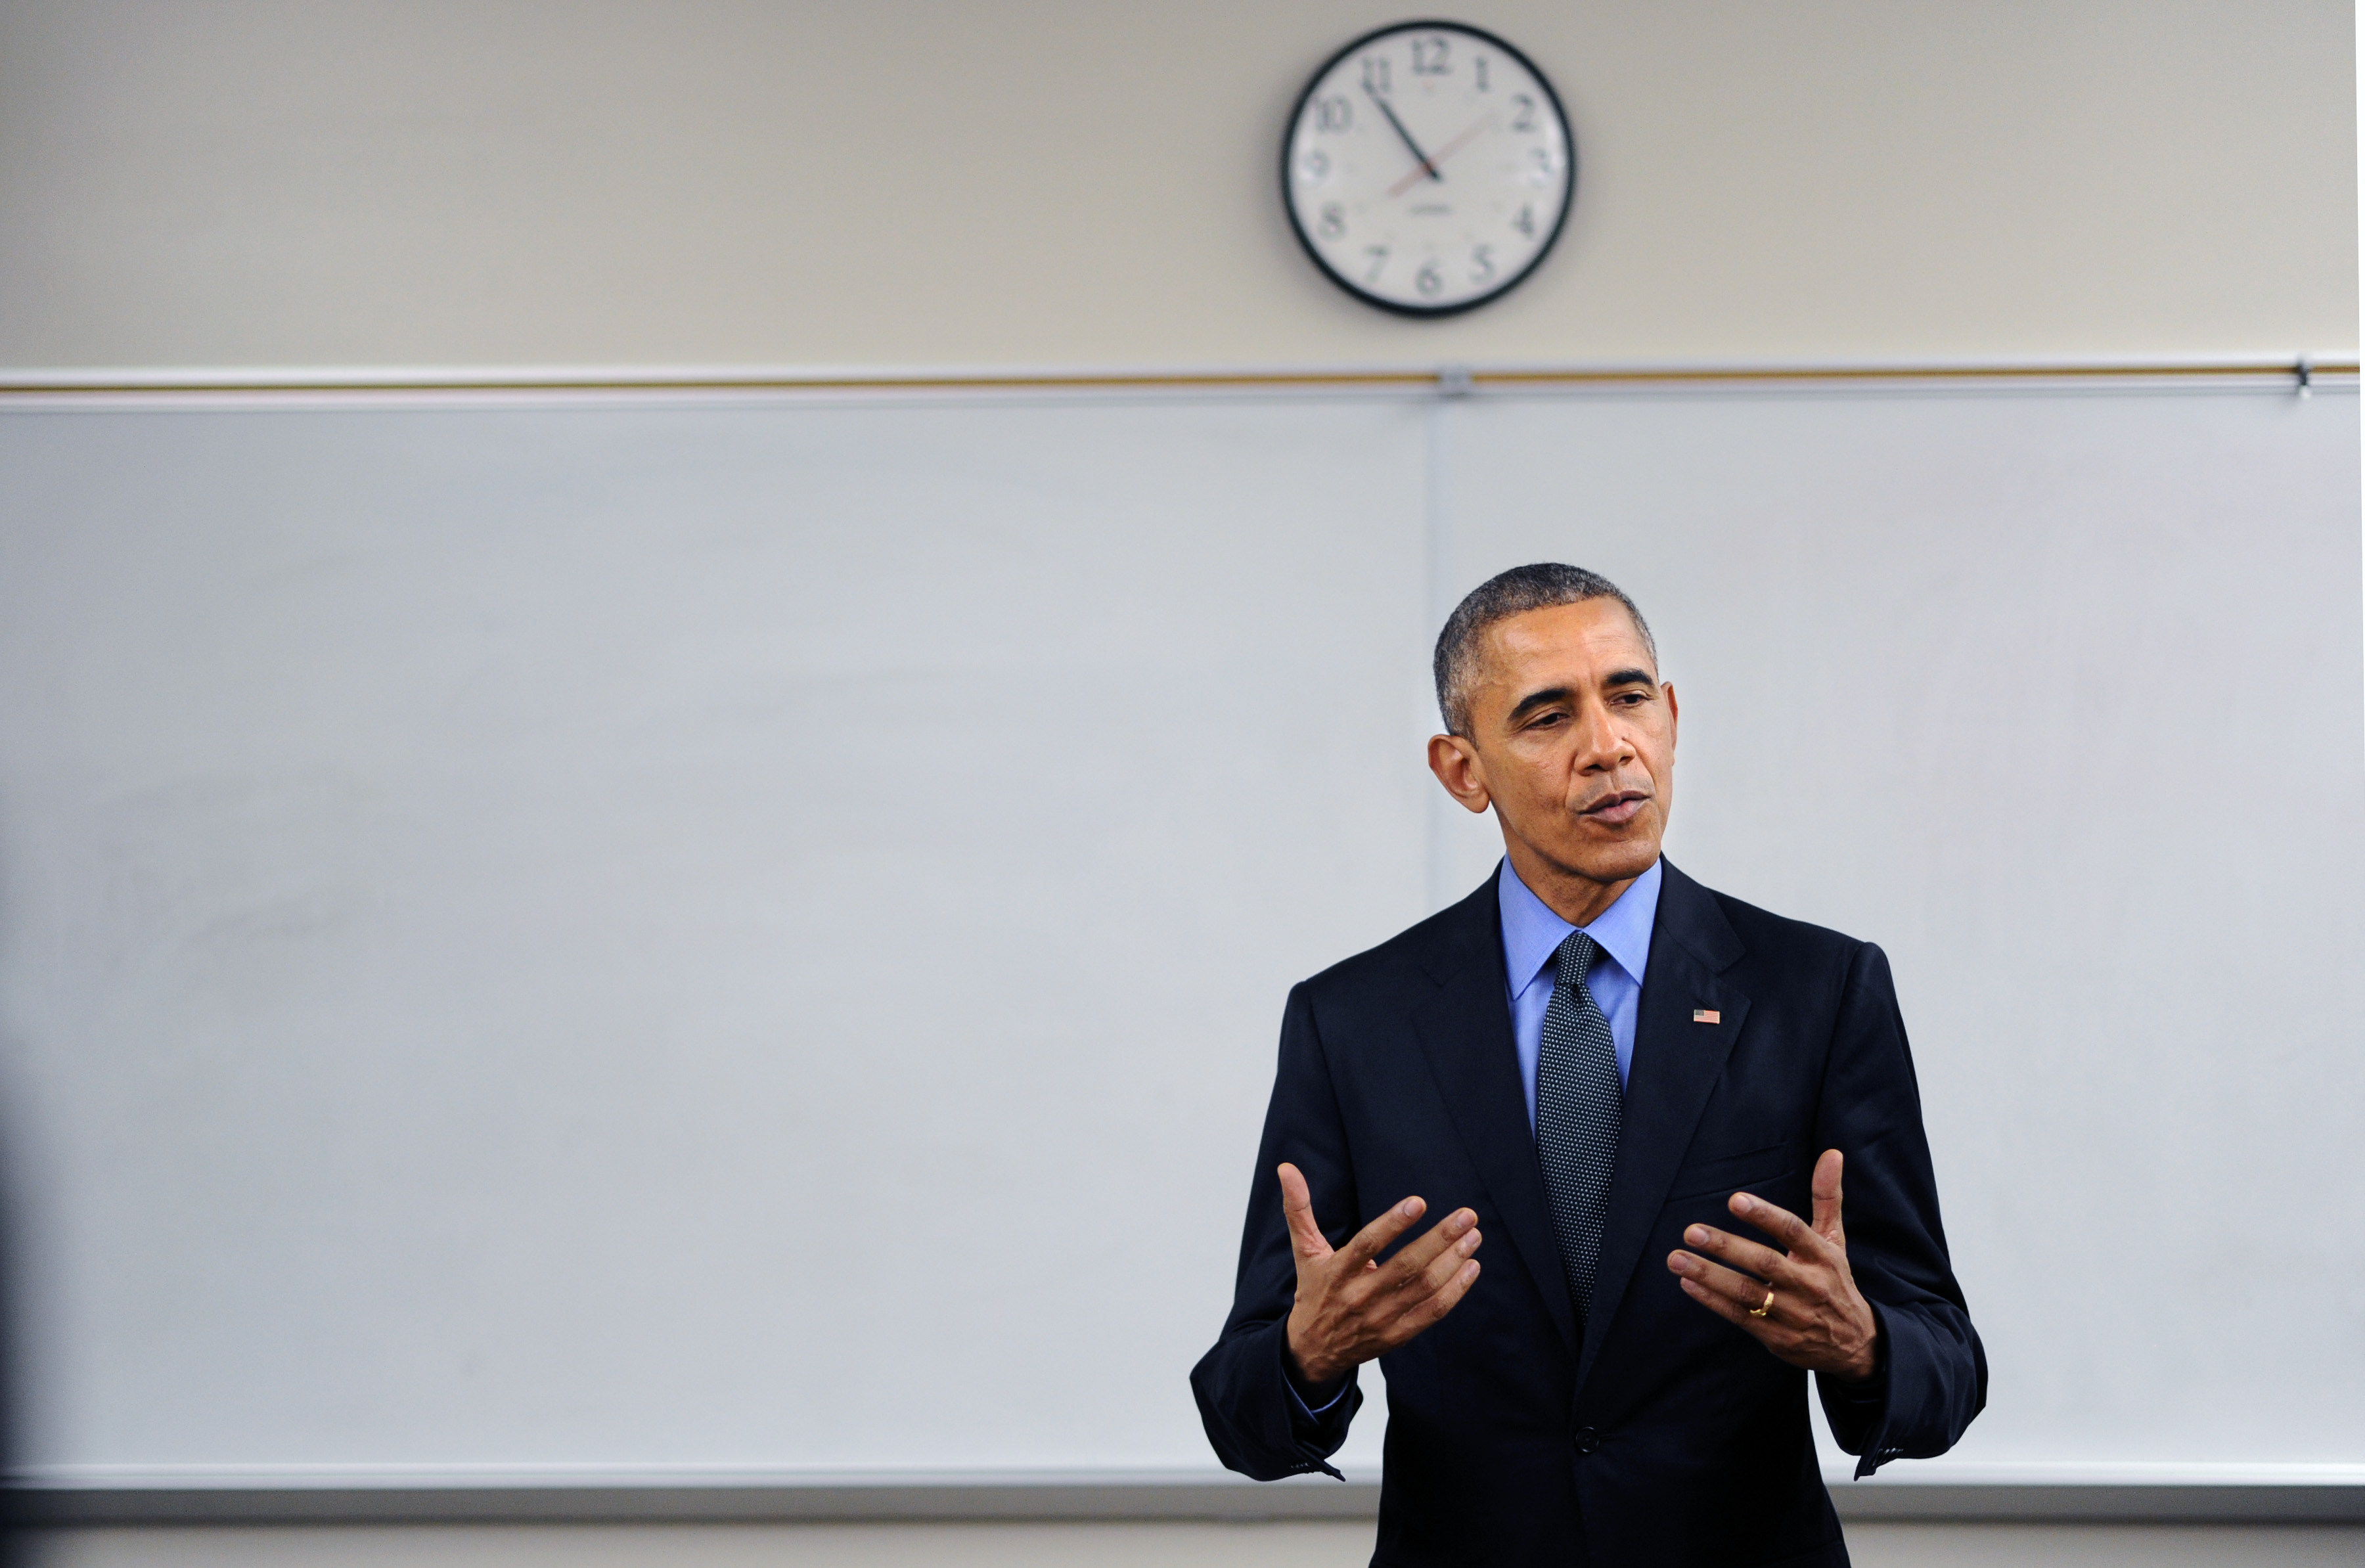 U.S. President Barack Obama speaks to the media at Indian Springs High School on Dec. 18, 2015, in San Bernardino, Calif. Obama was in town to meet privately with the families of the victims of the San Bernardino terrorist attack